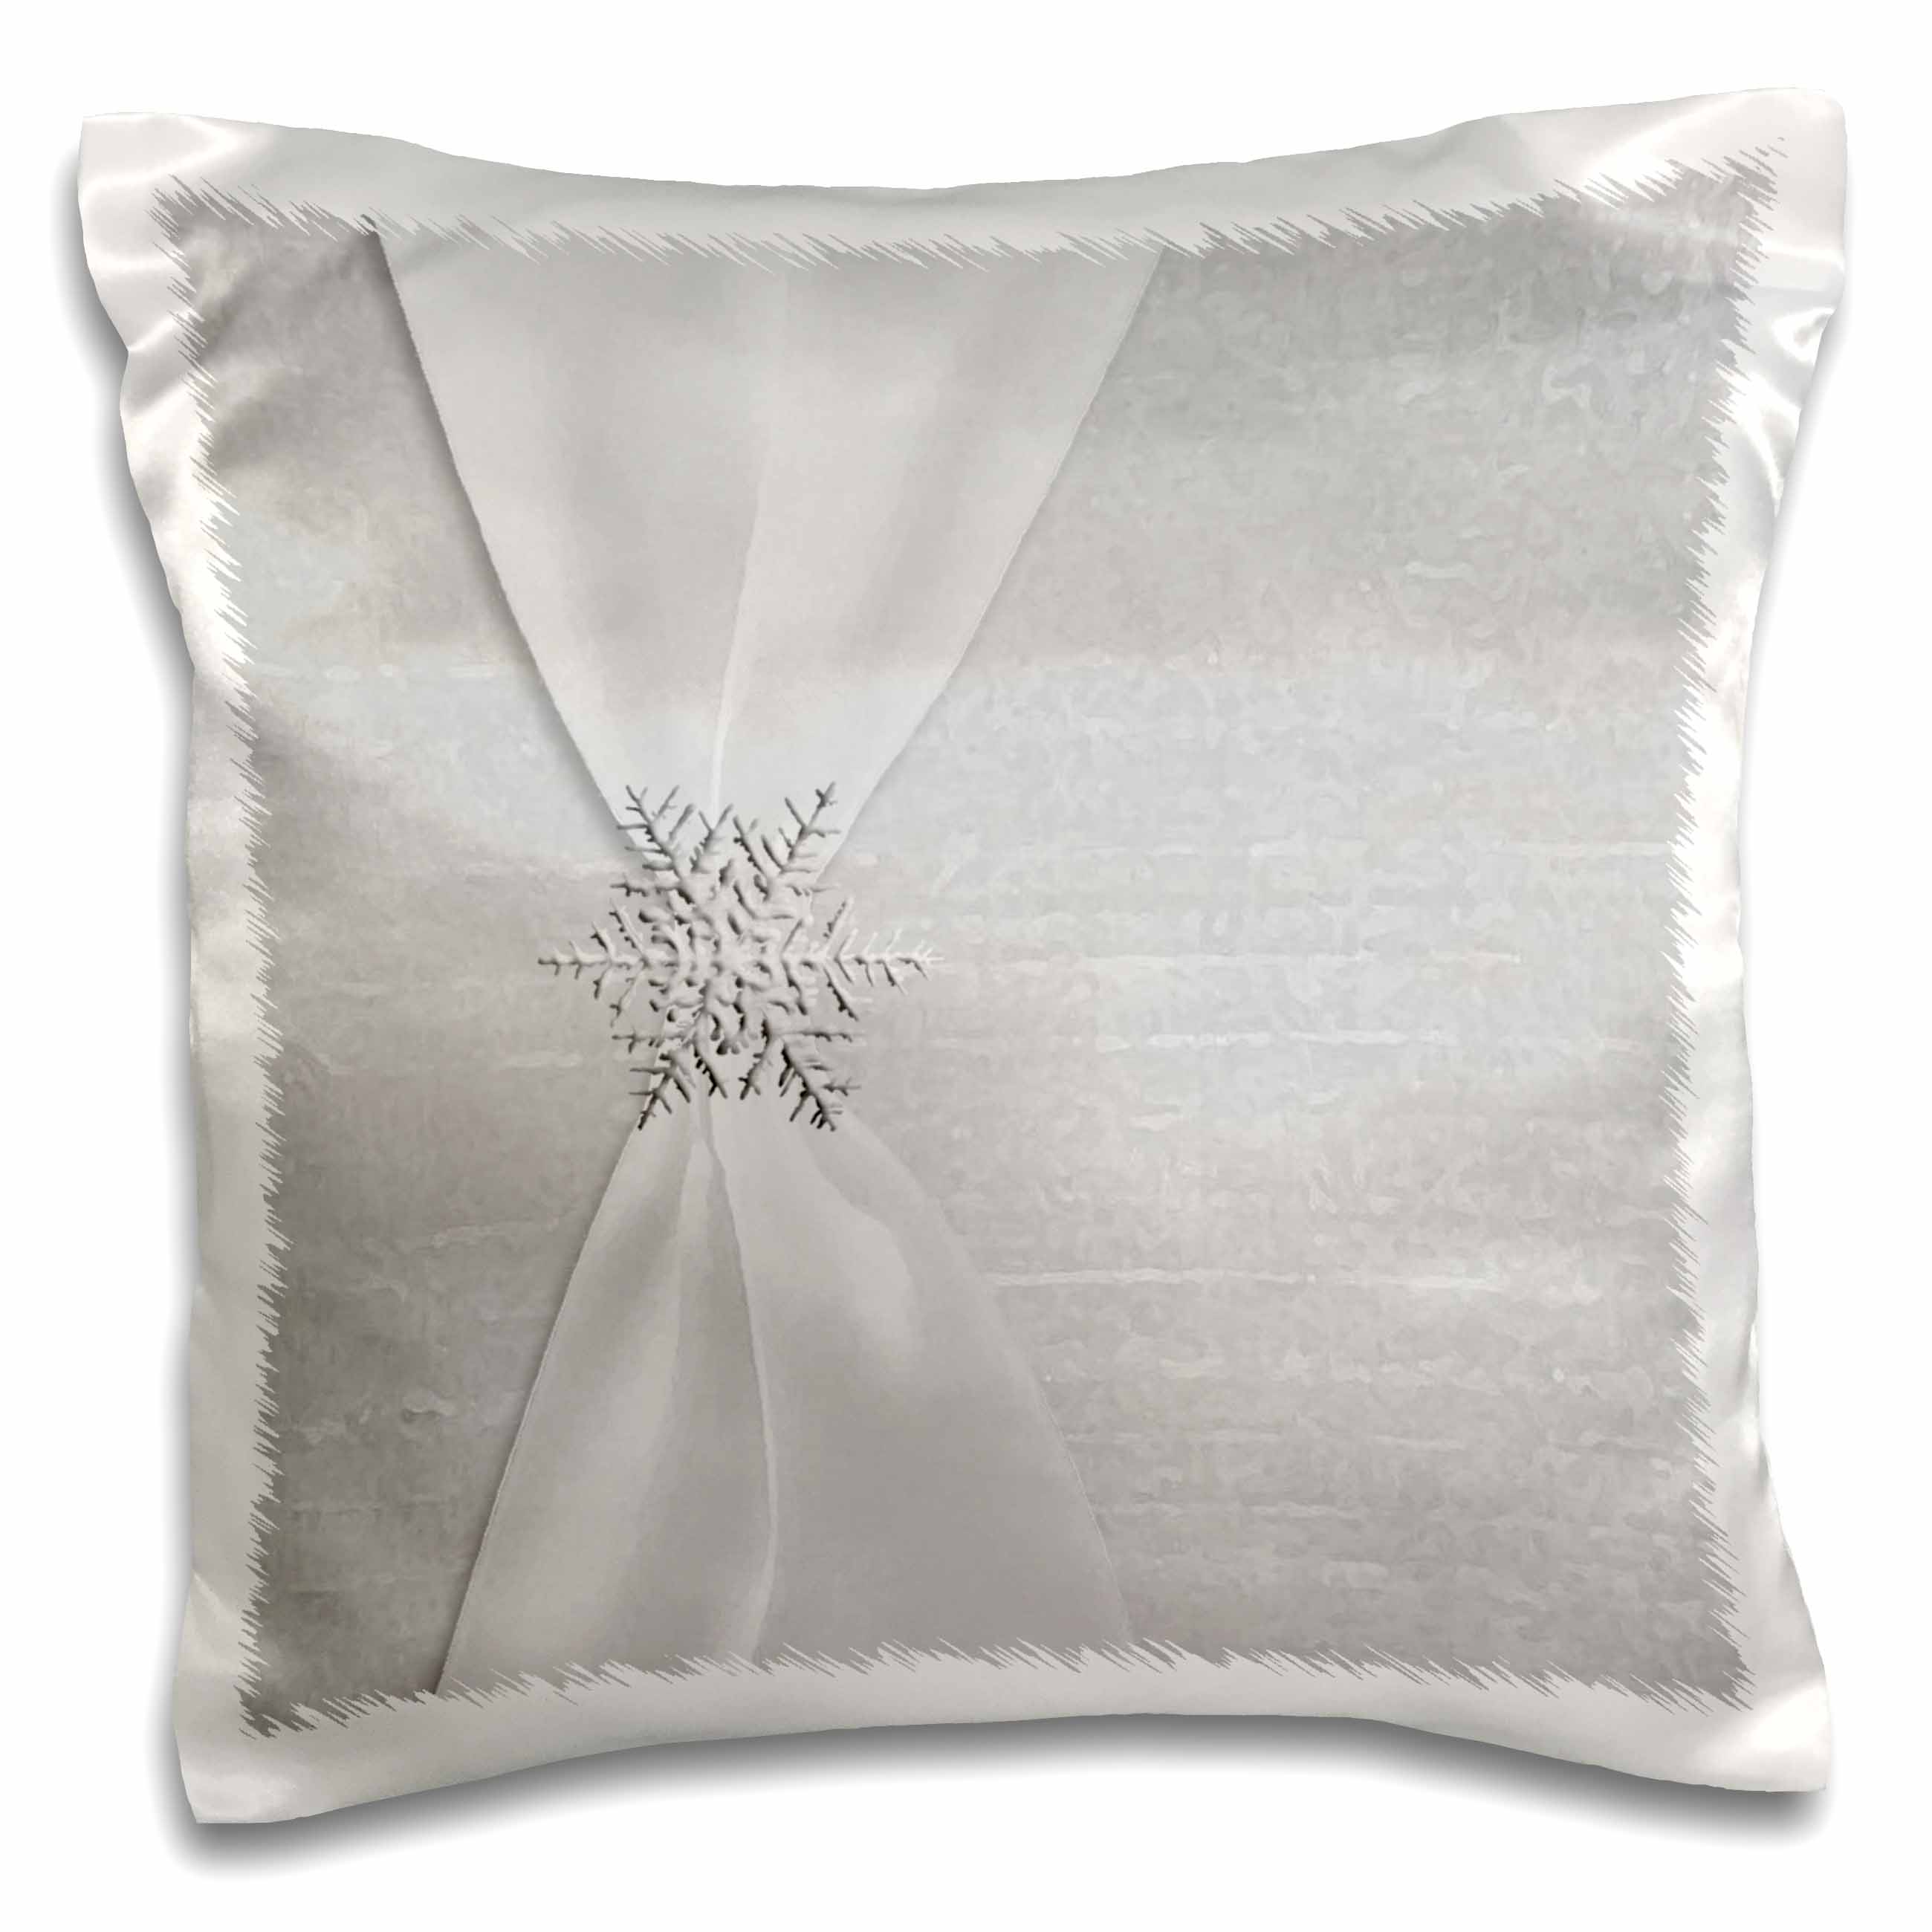 3dRose White Satin Ribbon with Snowflake, Pillow Case, 16 by 16-inch